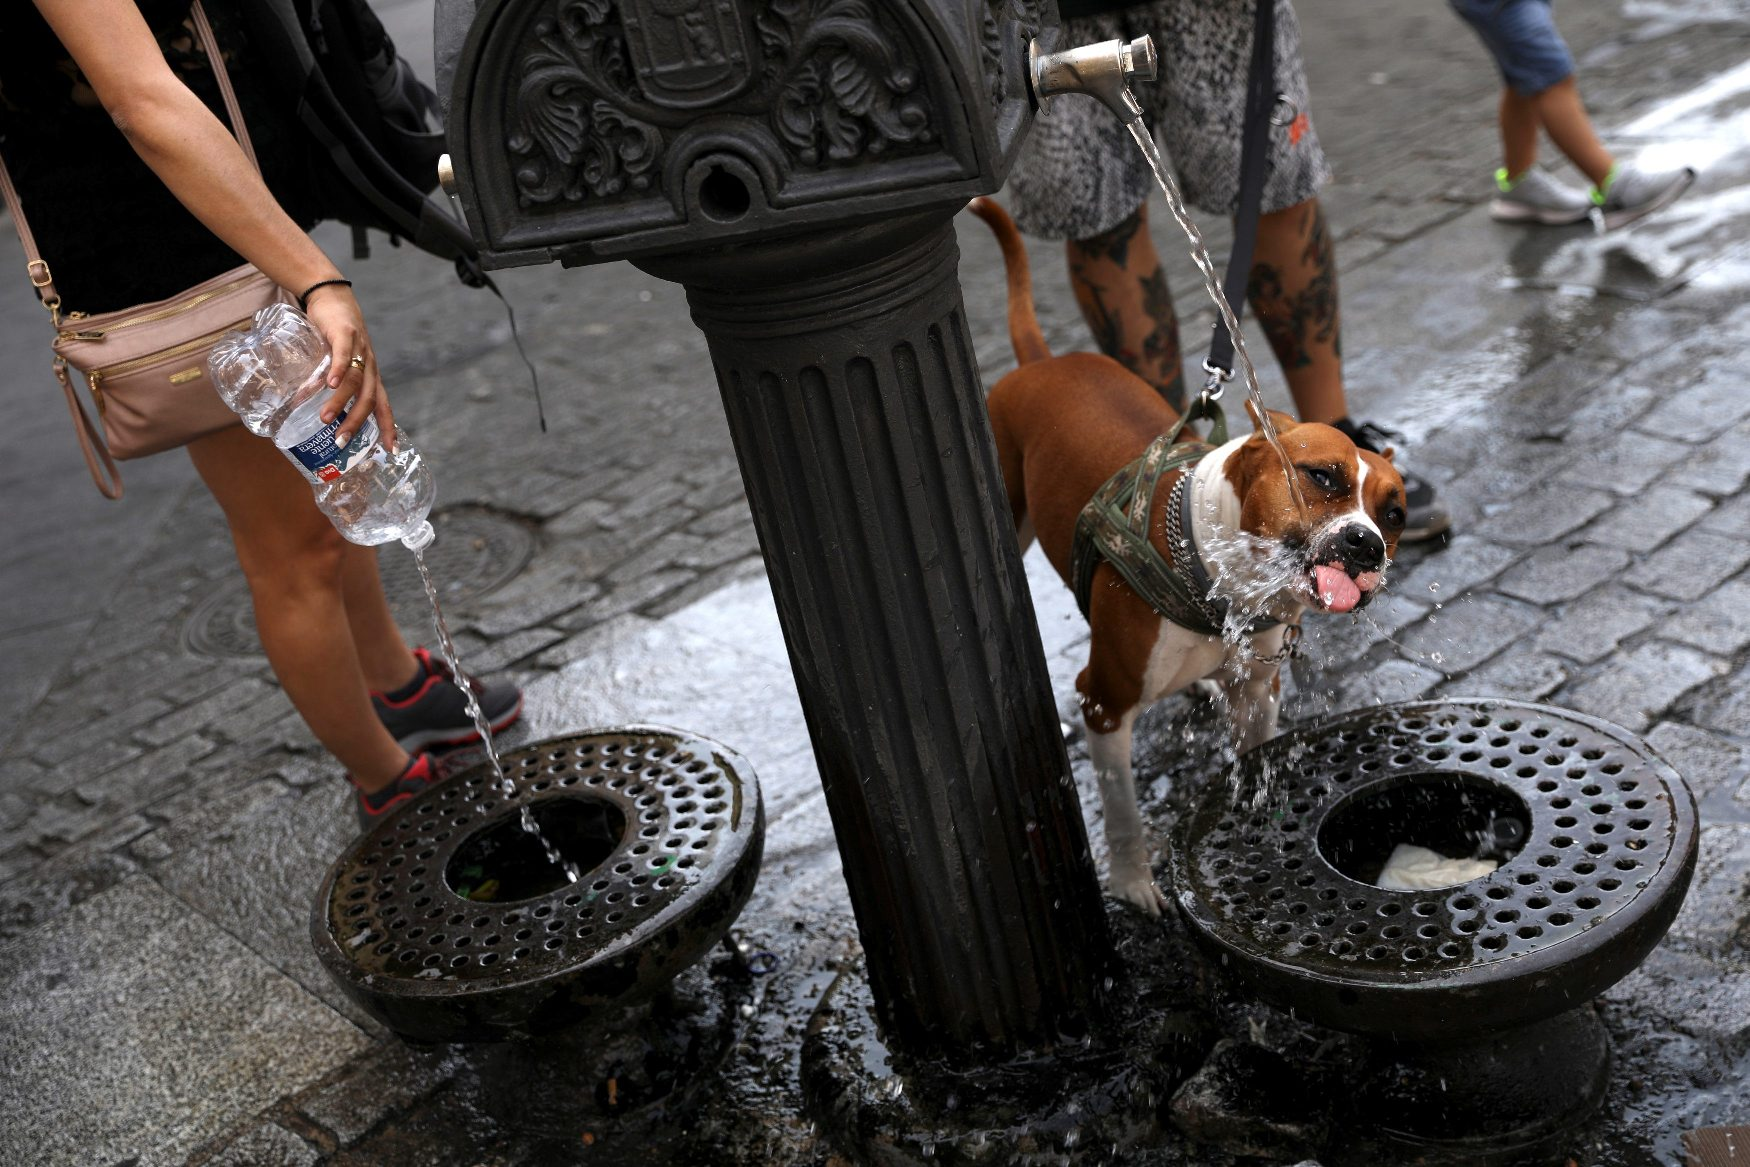 A dog drinks water from a public fountain as temperatures soar throughout the country, in Madrid, Spain, August 2, 2018. REUTERS/Susana Vera